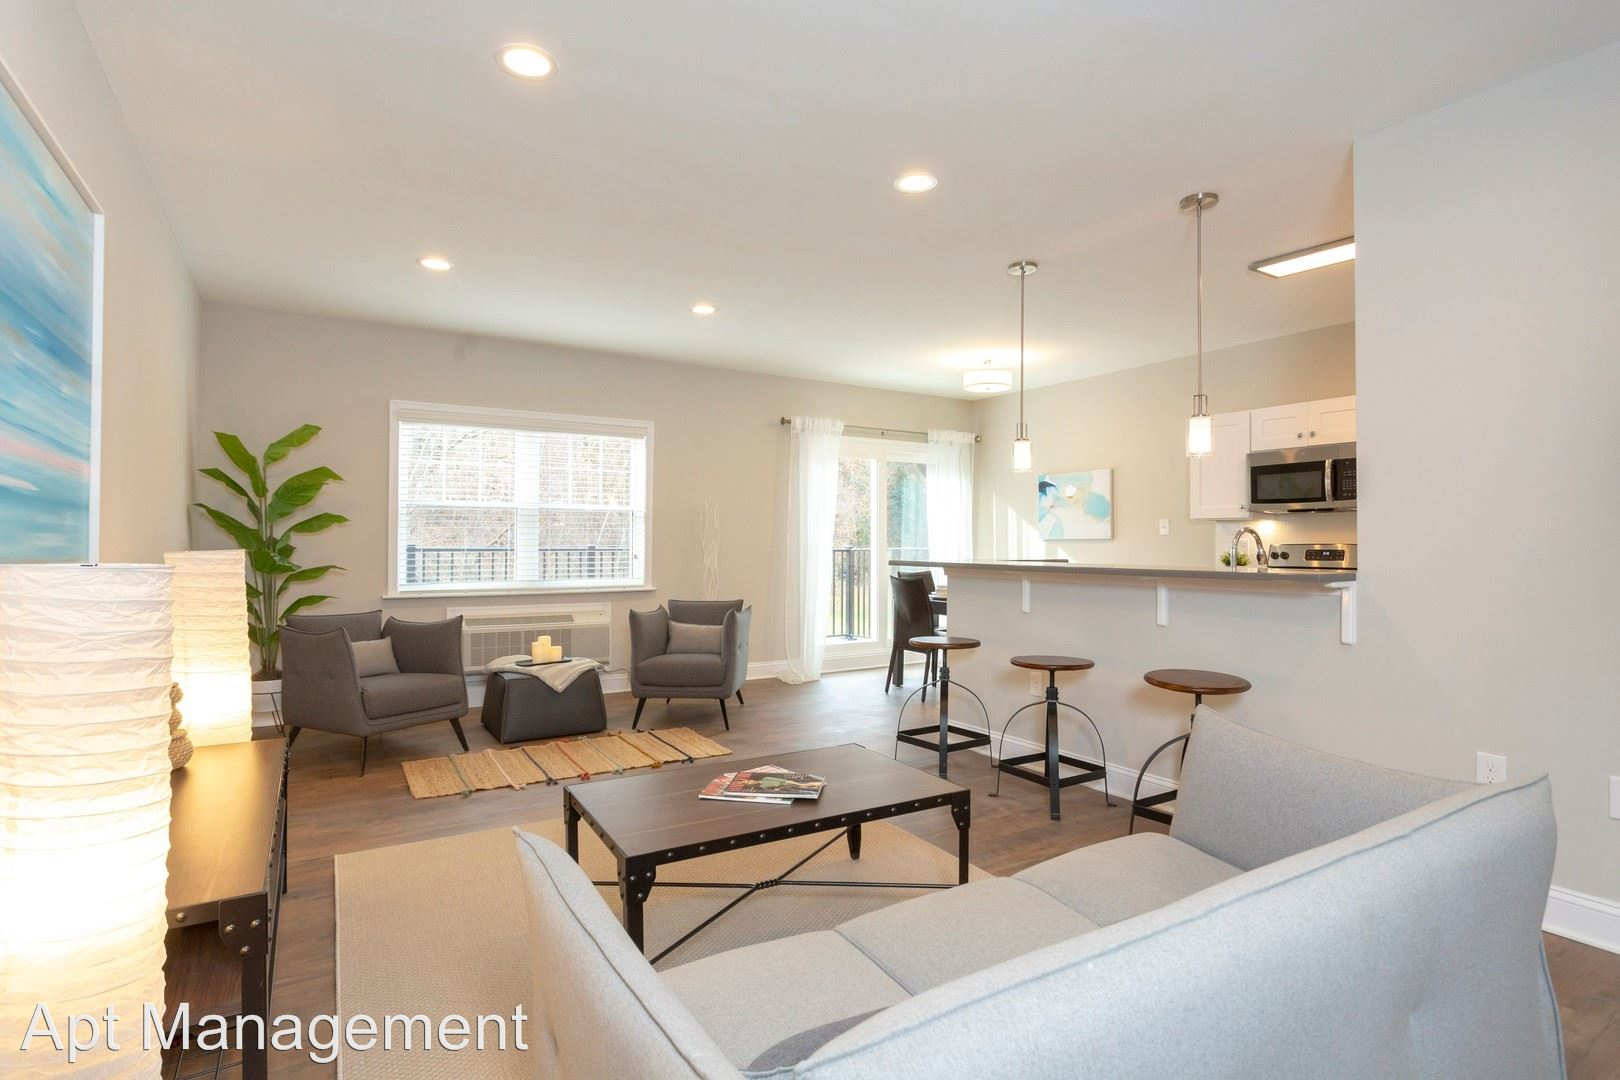 Apartment for Rent in Radnor